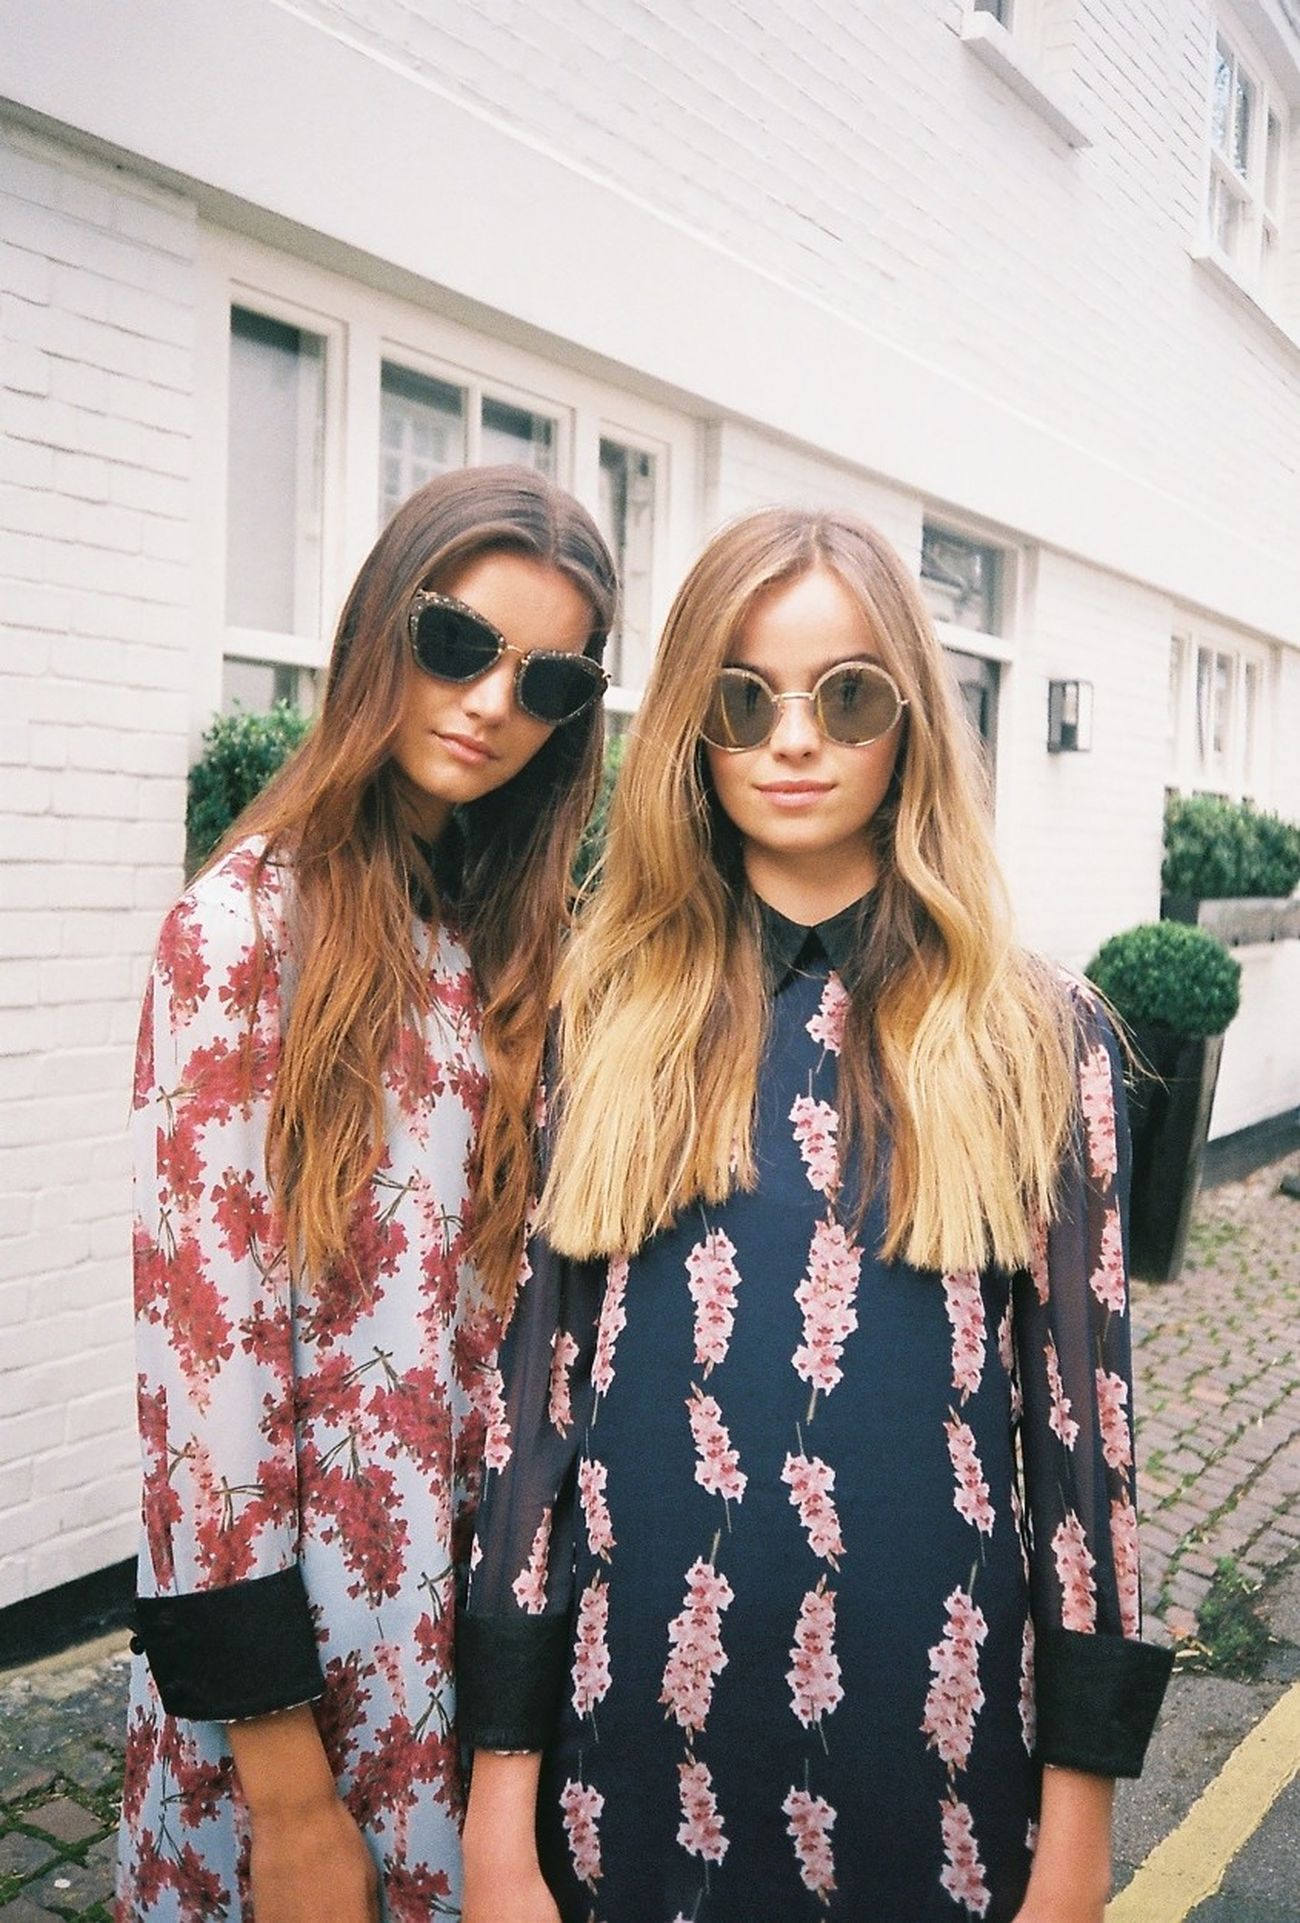 35mm 35mm Film Analogue Photography Editorial  Fashion Fashion Editorial Fashion Photography Fashionphotography Film Photography Filmisnotdead Girls Long Hair Magazine Shoot Matching Outfits Models Portrait Smiling Sunglasses